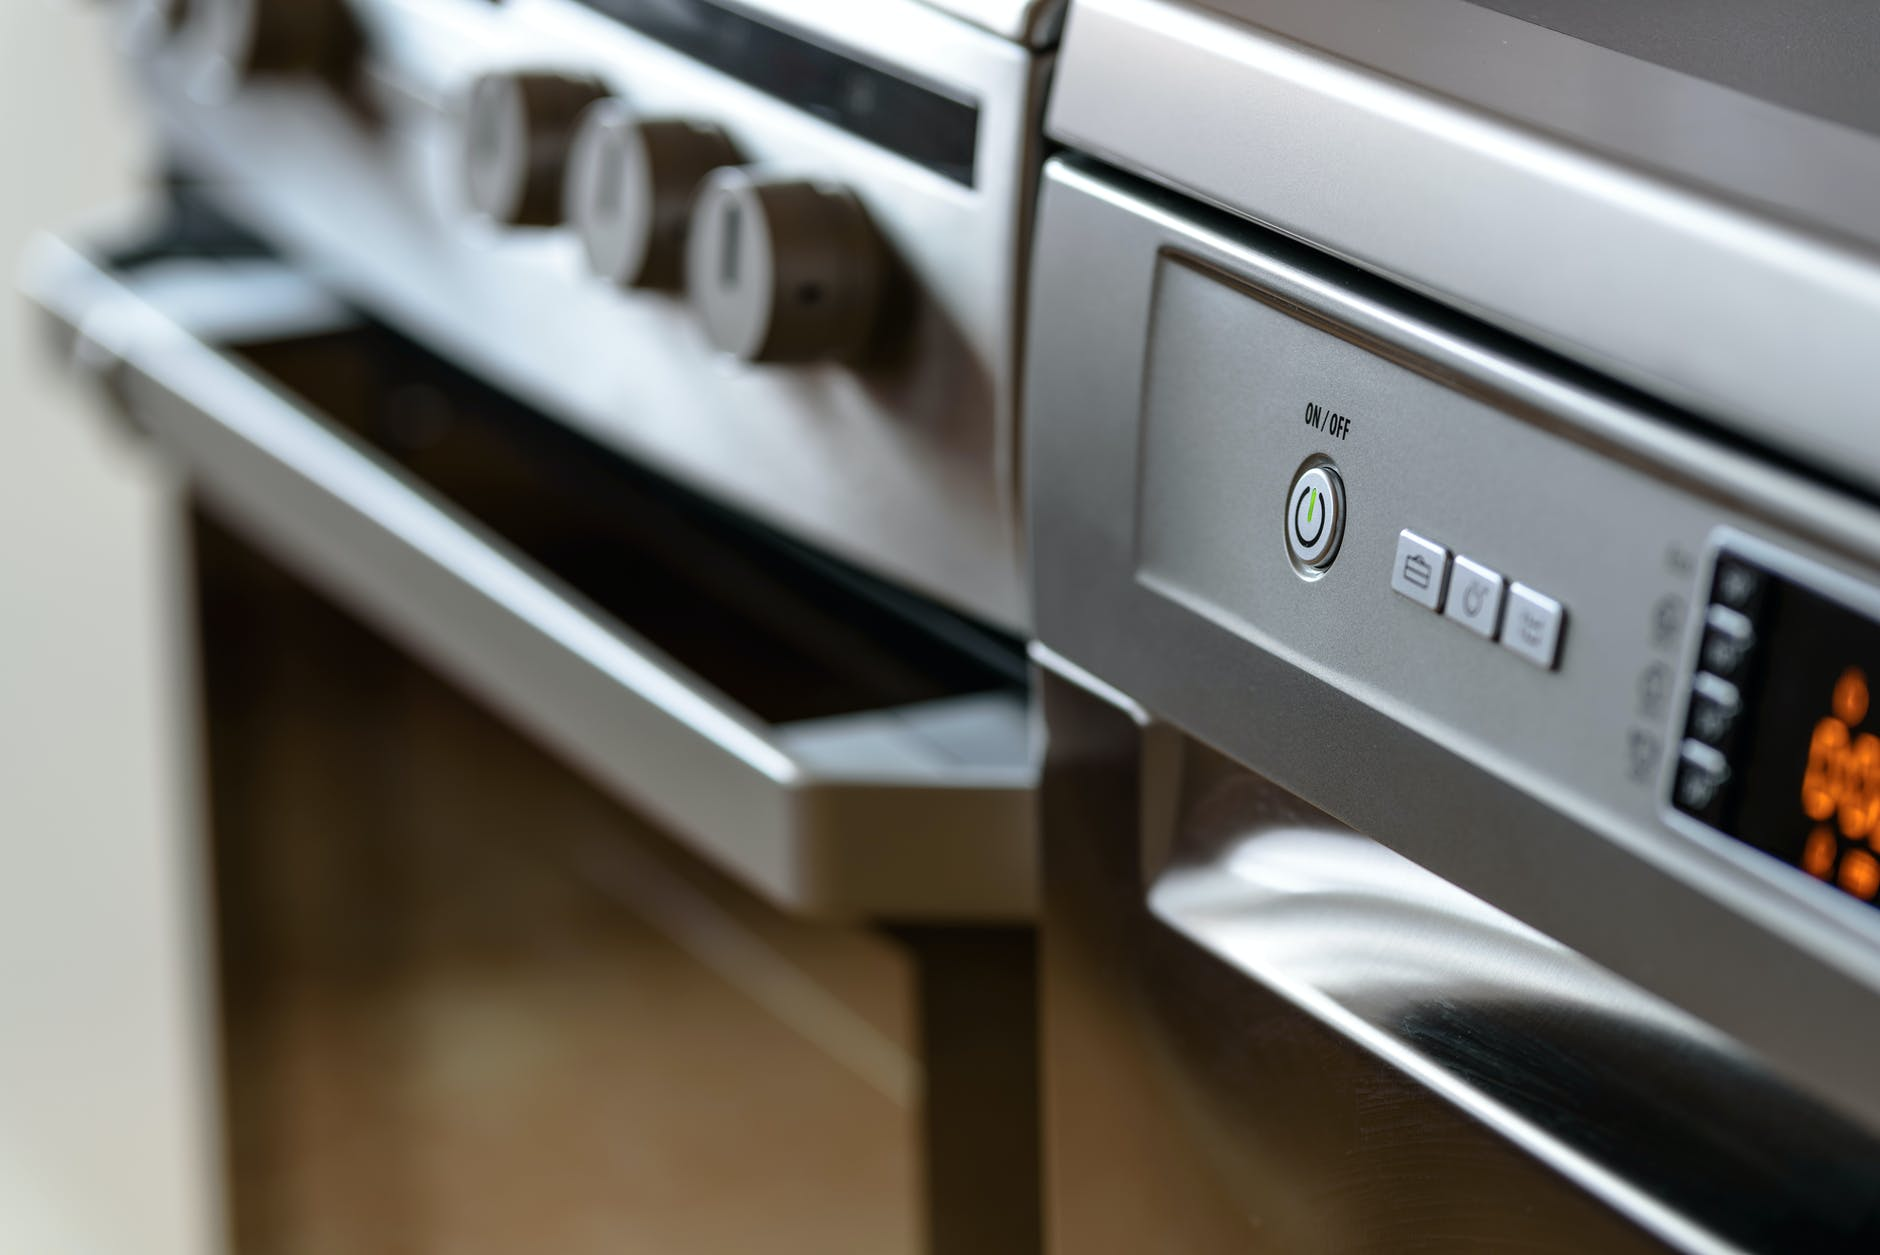 How To Preheat Oven And For How Long